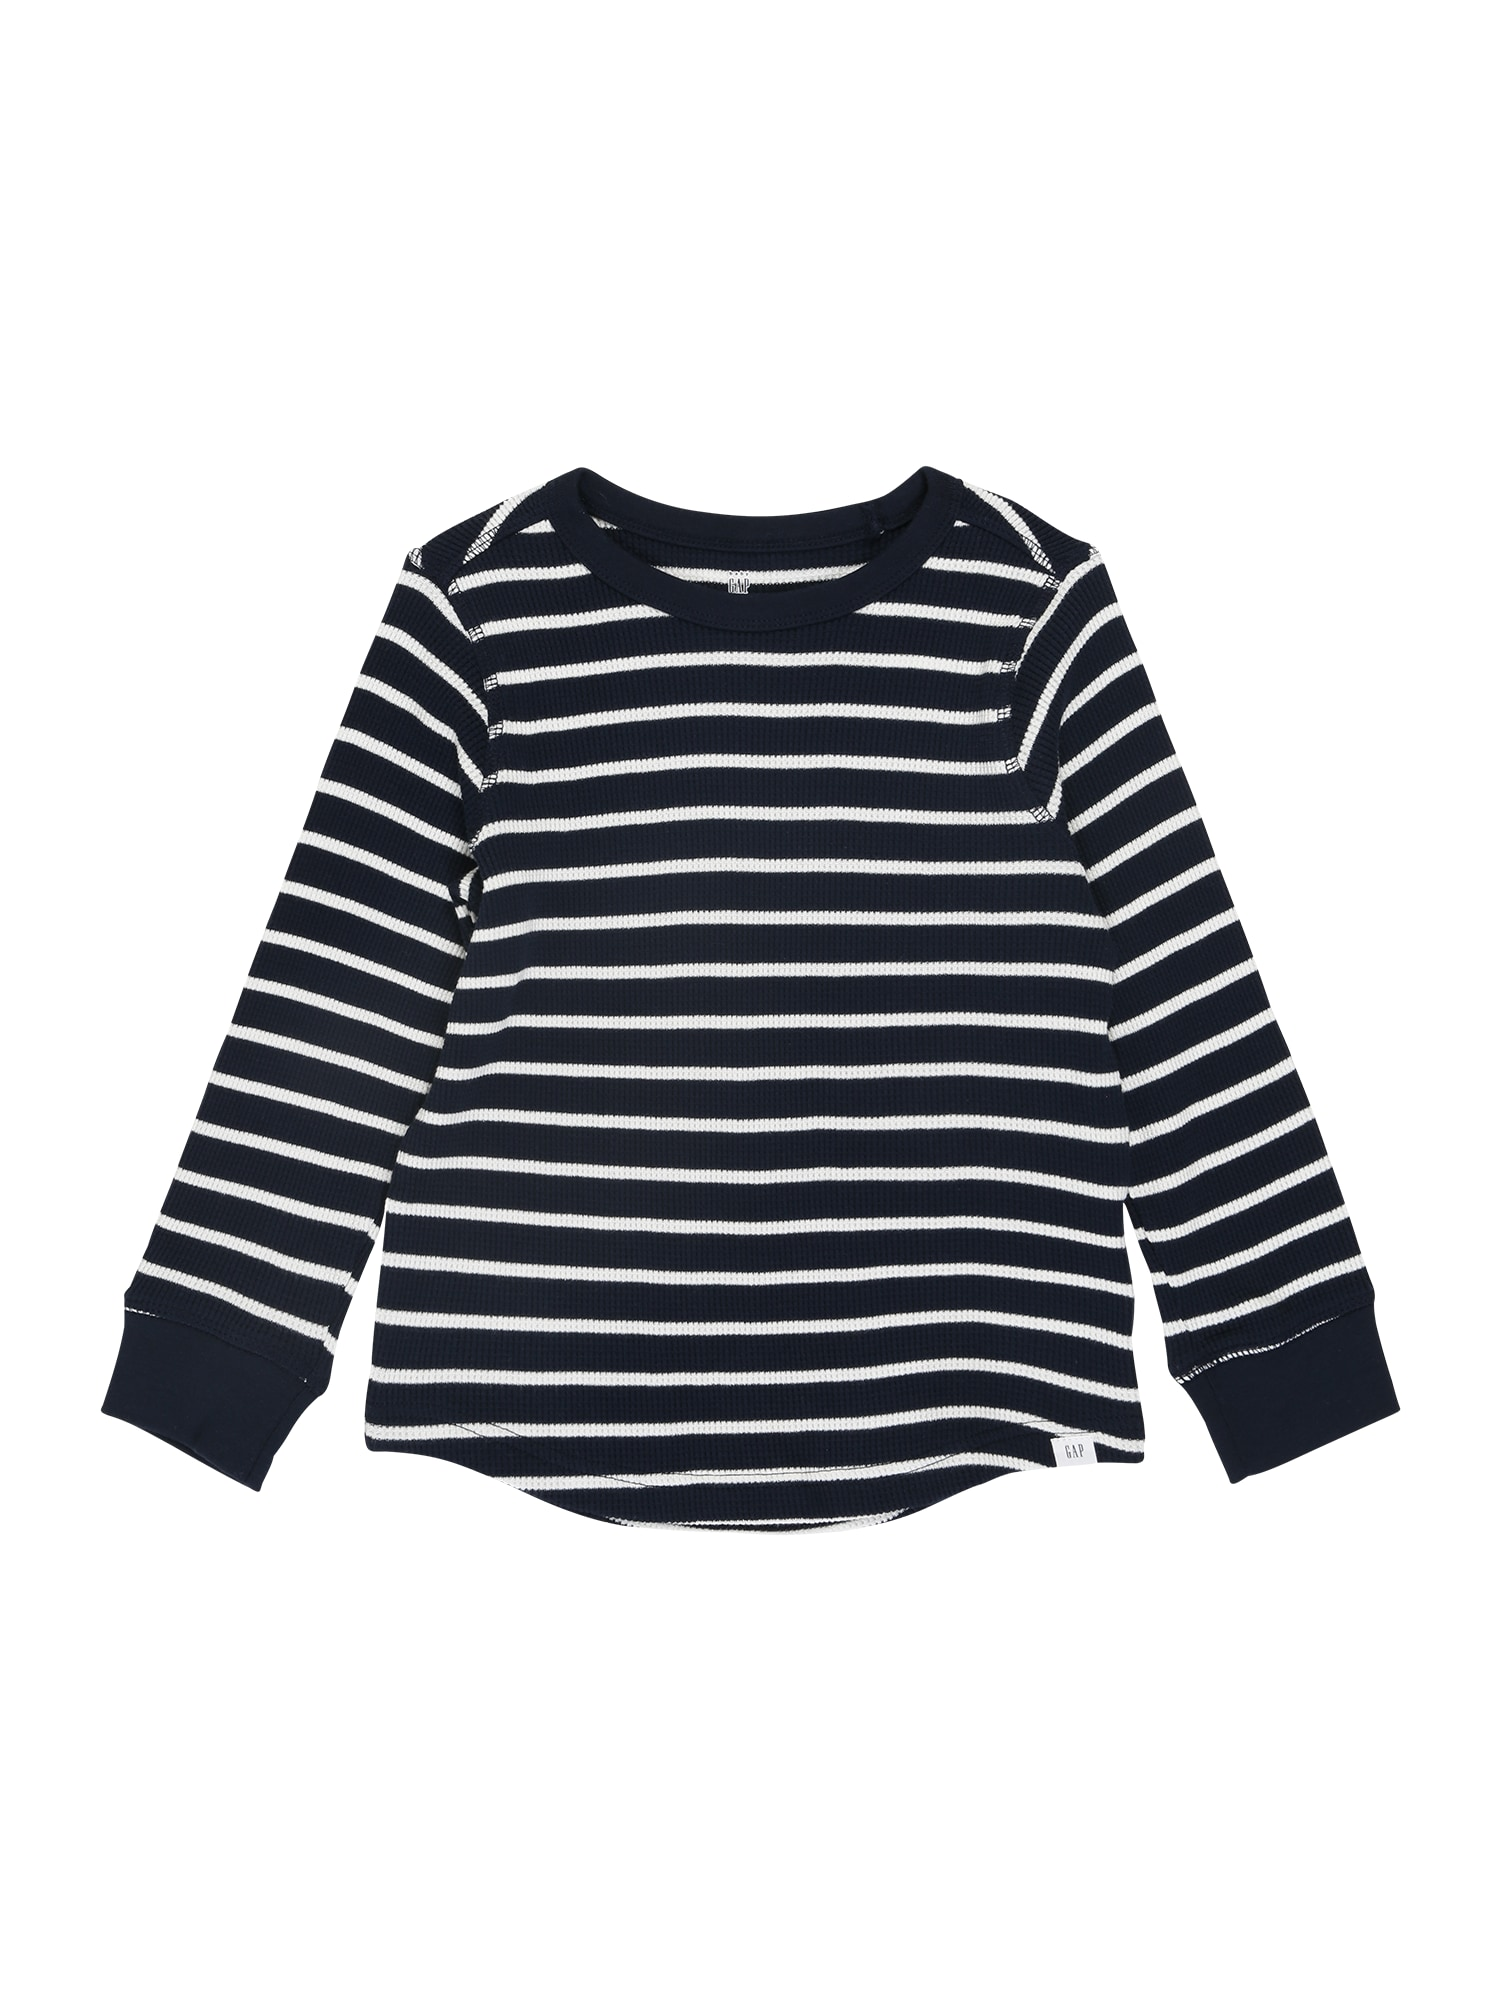 Babyoberteile - Pullover 'THERMAL' - Onlineshop ABOUT YOU